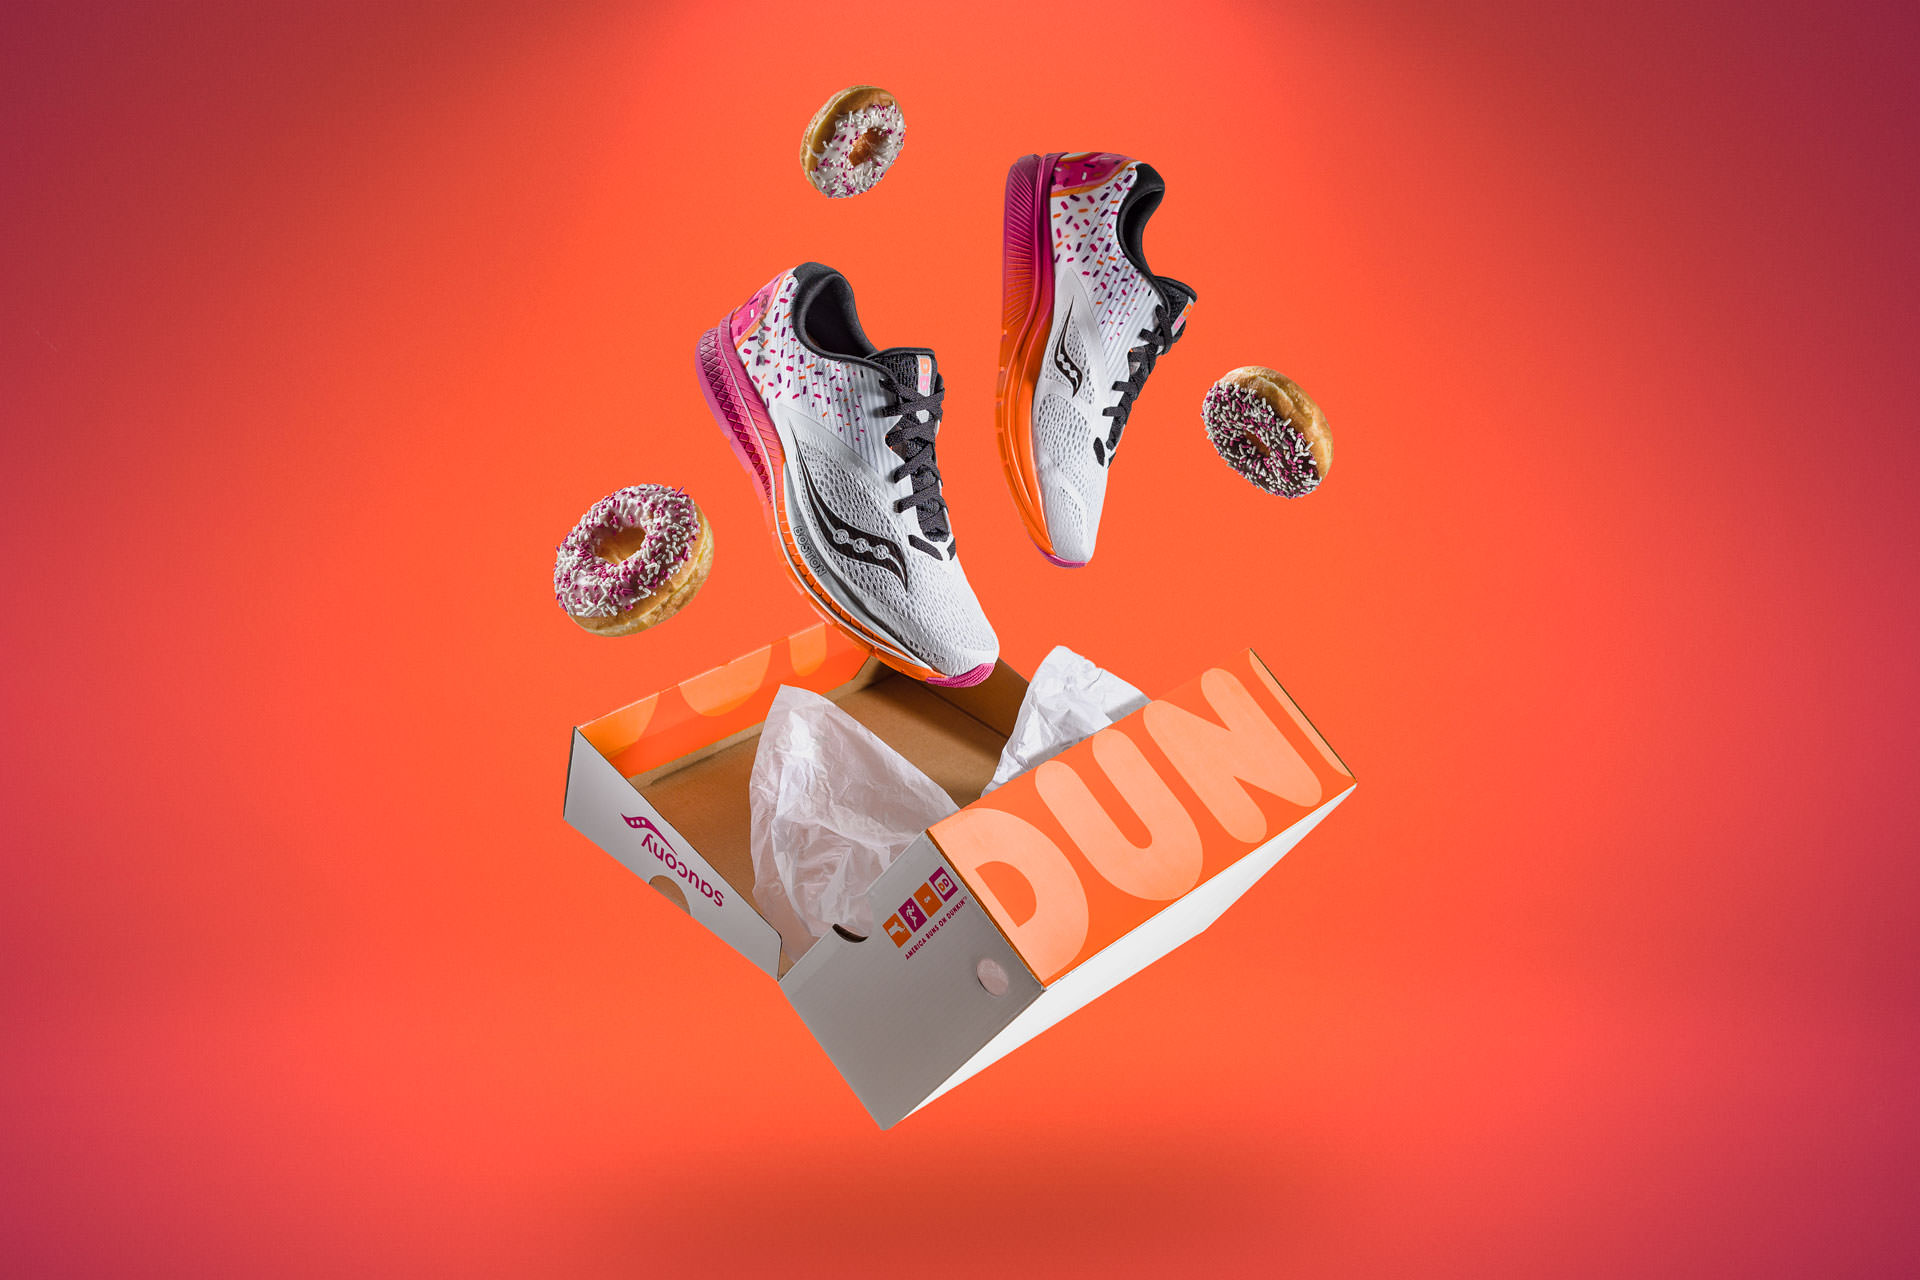 Saucony - Dunkin' Donuts Collab Launch